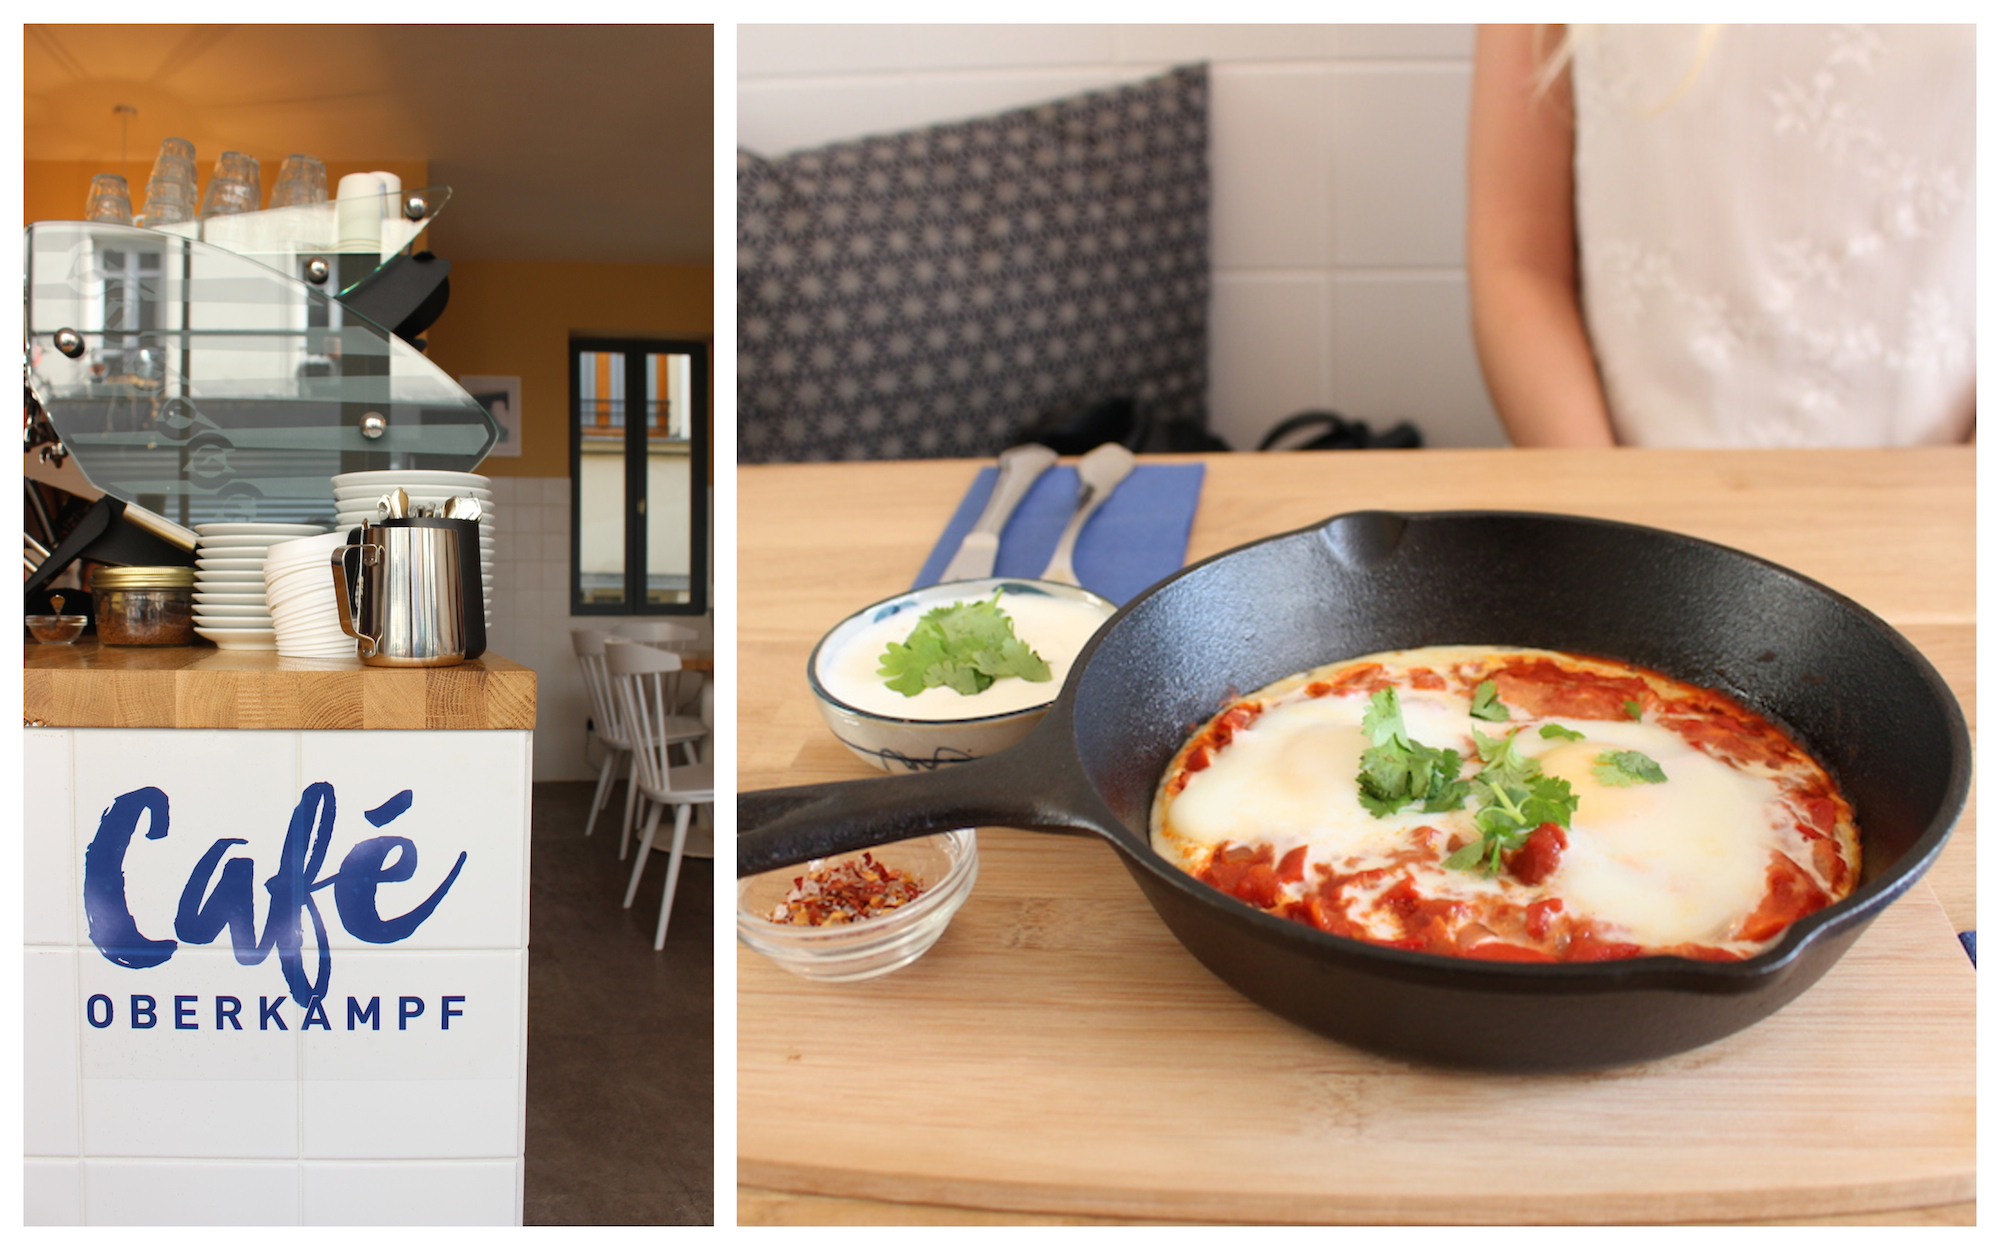 HiP Paris Blog rounds up the top brunch spots in Paris like Café Oberkampf for the coffee (left) and shakshuka served in a pan (right).